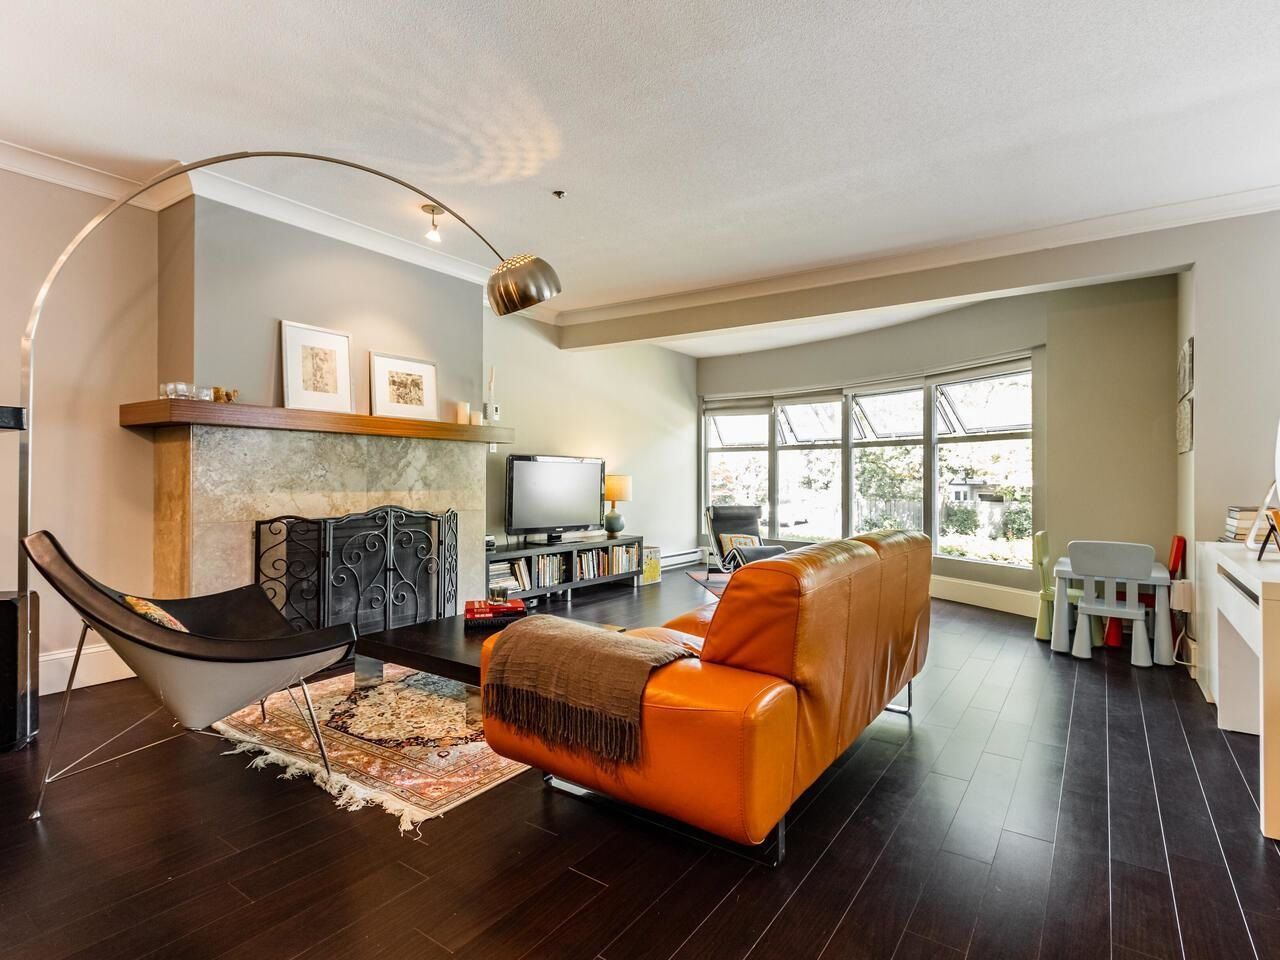 """Main Photo: 203 668 W 16TH Avenue in Vancouver: Cambie Condo for sale in """"The Mansions"""" (Vancouver West)  : MLS®# R2606926"""